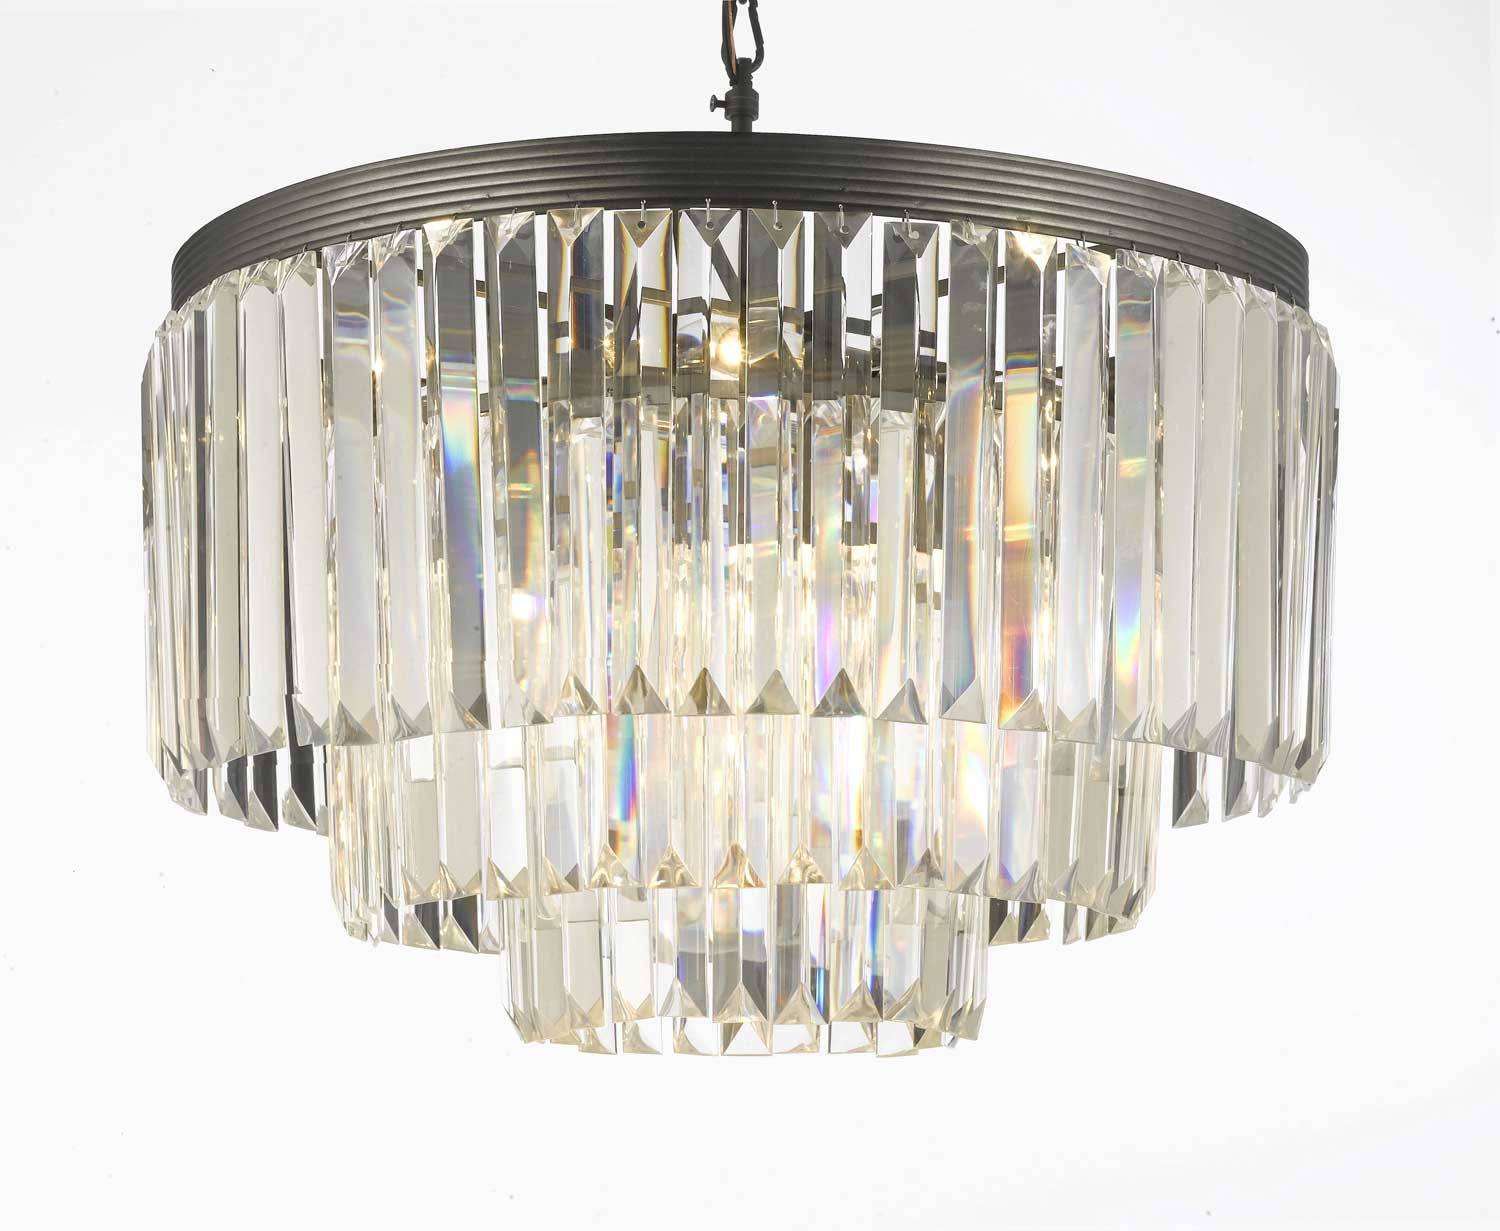 G7 11009 Gallery Chandeliers Retro Odeon Crystal Glass Fringe 3 With Regard To 3 Tier Crystal Chandelier (View 3 of 15)